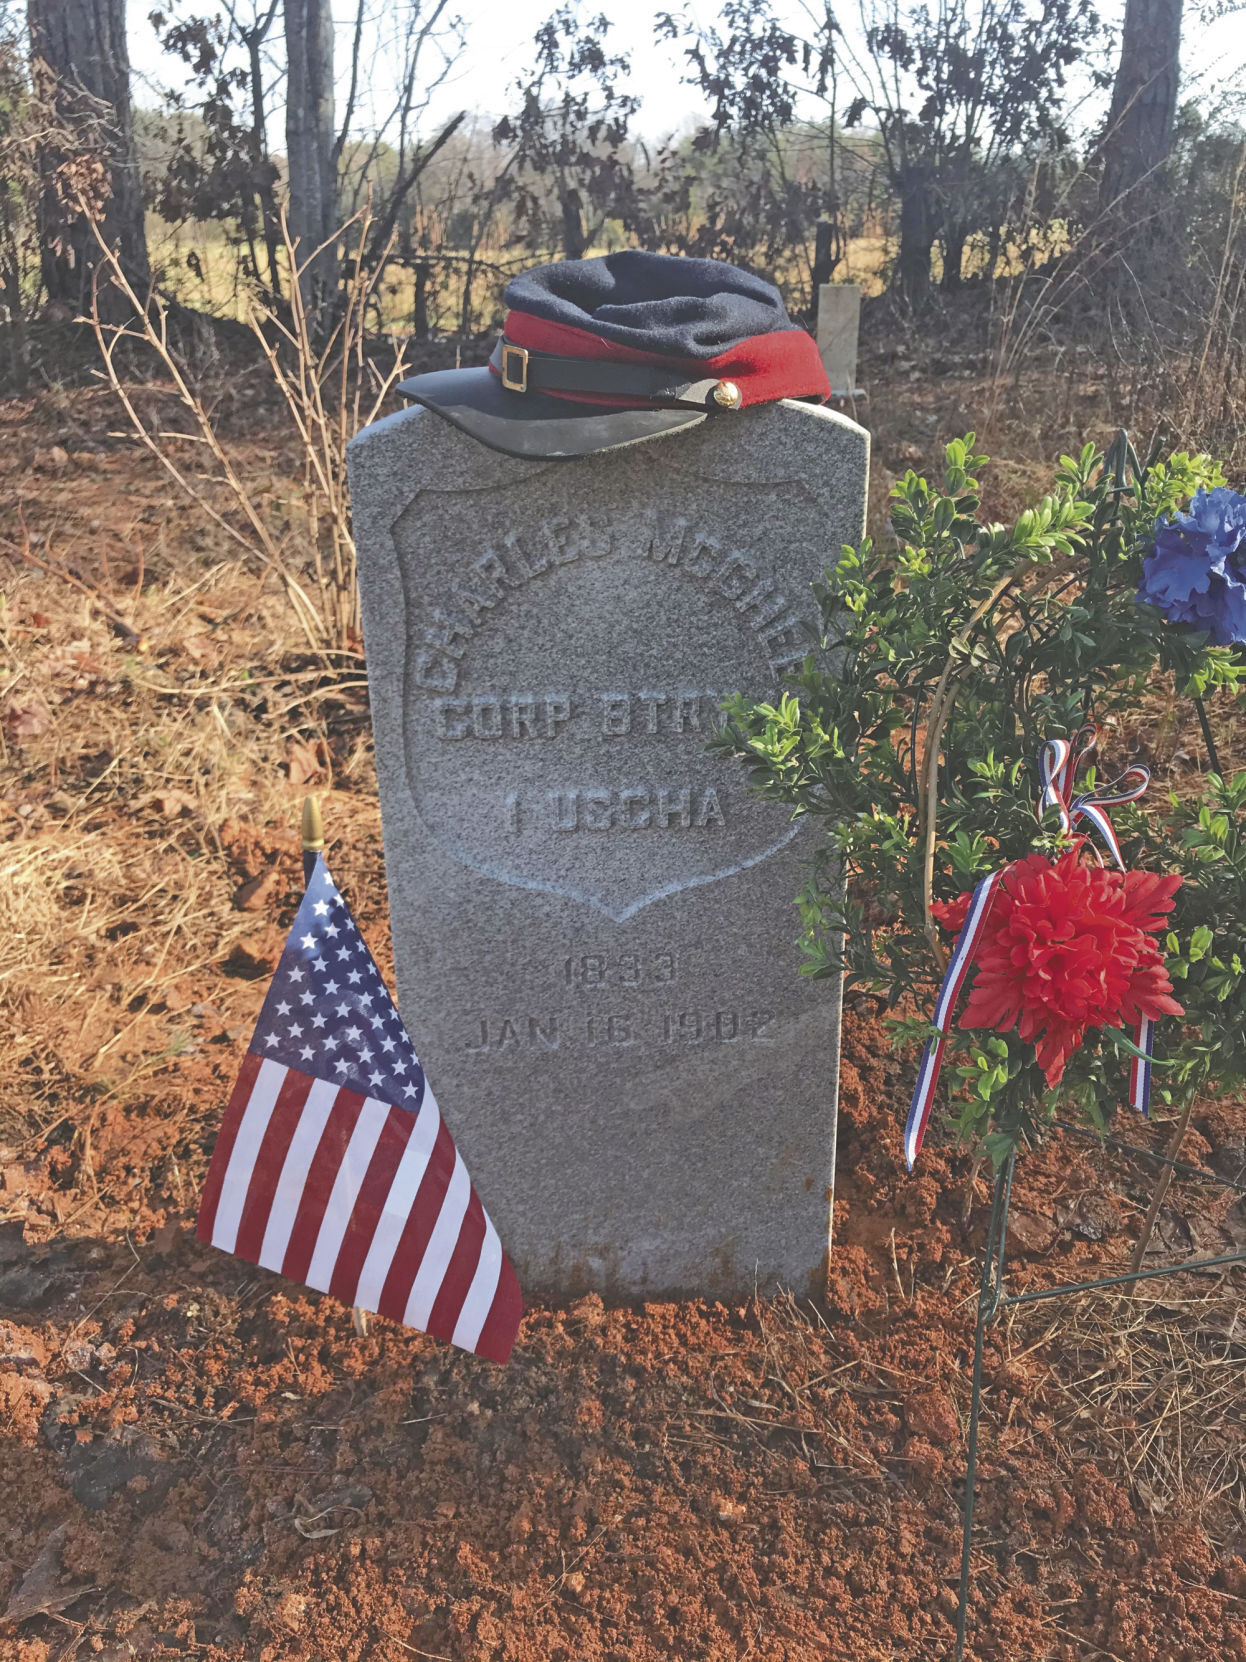 US Military marker installed for Cpl. McGhee